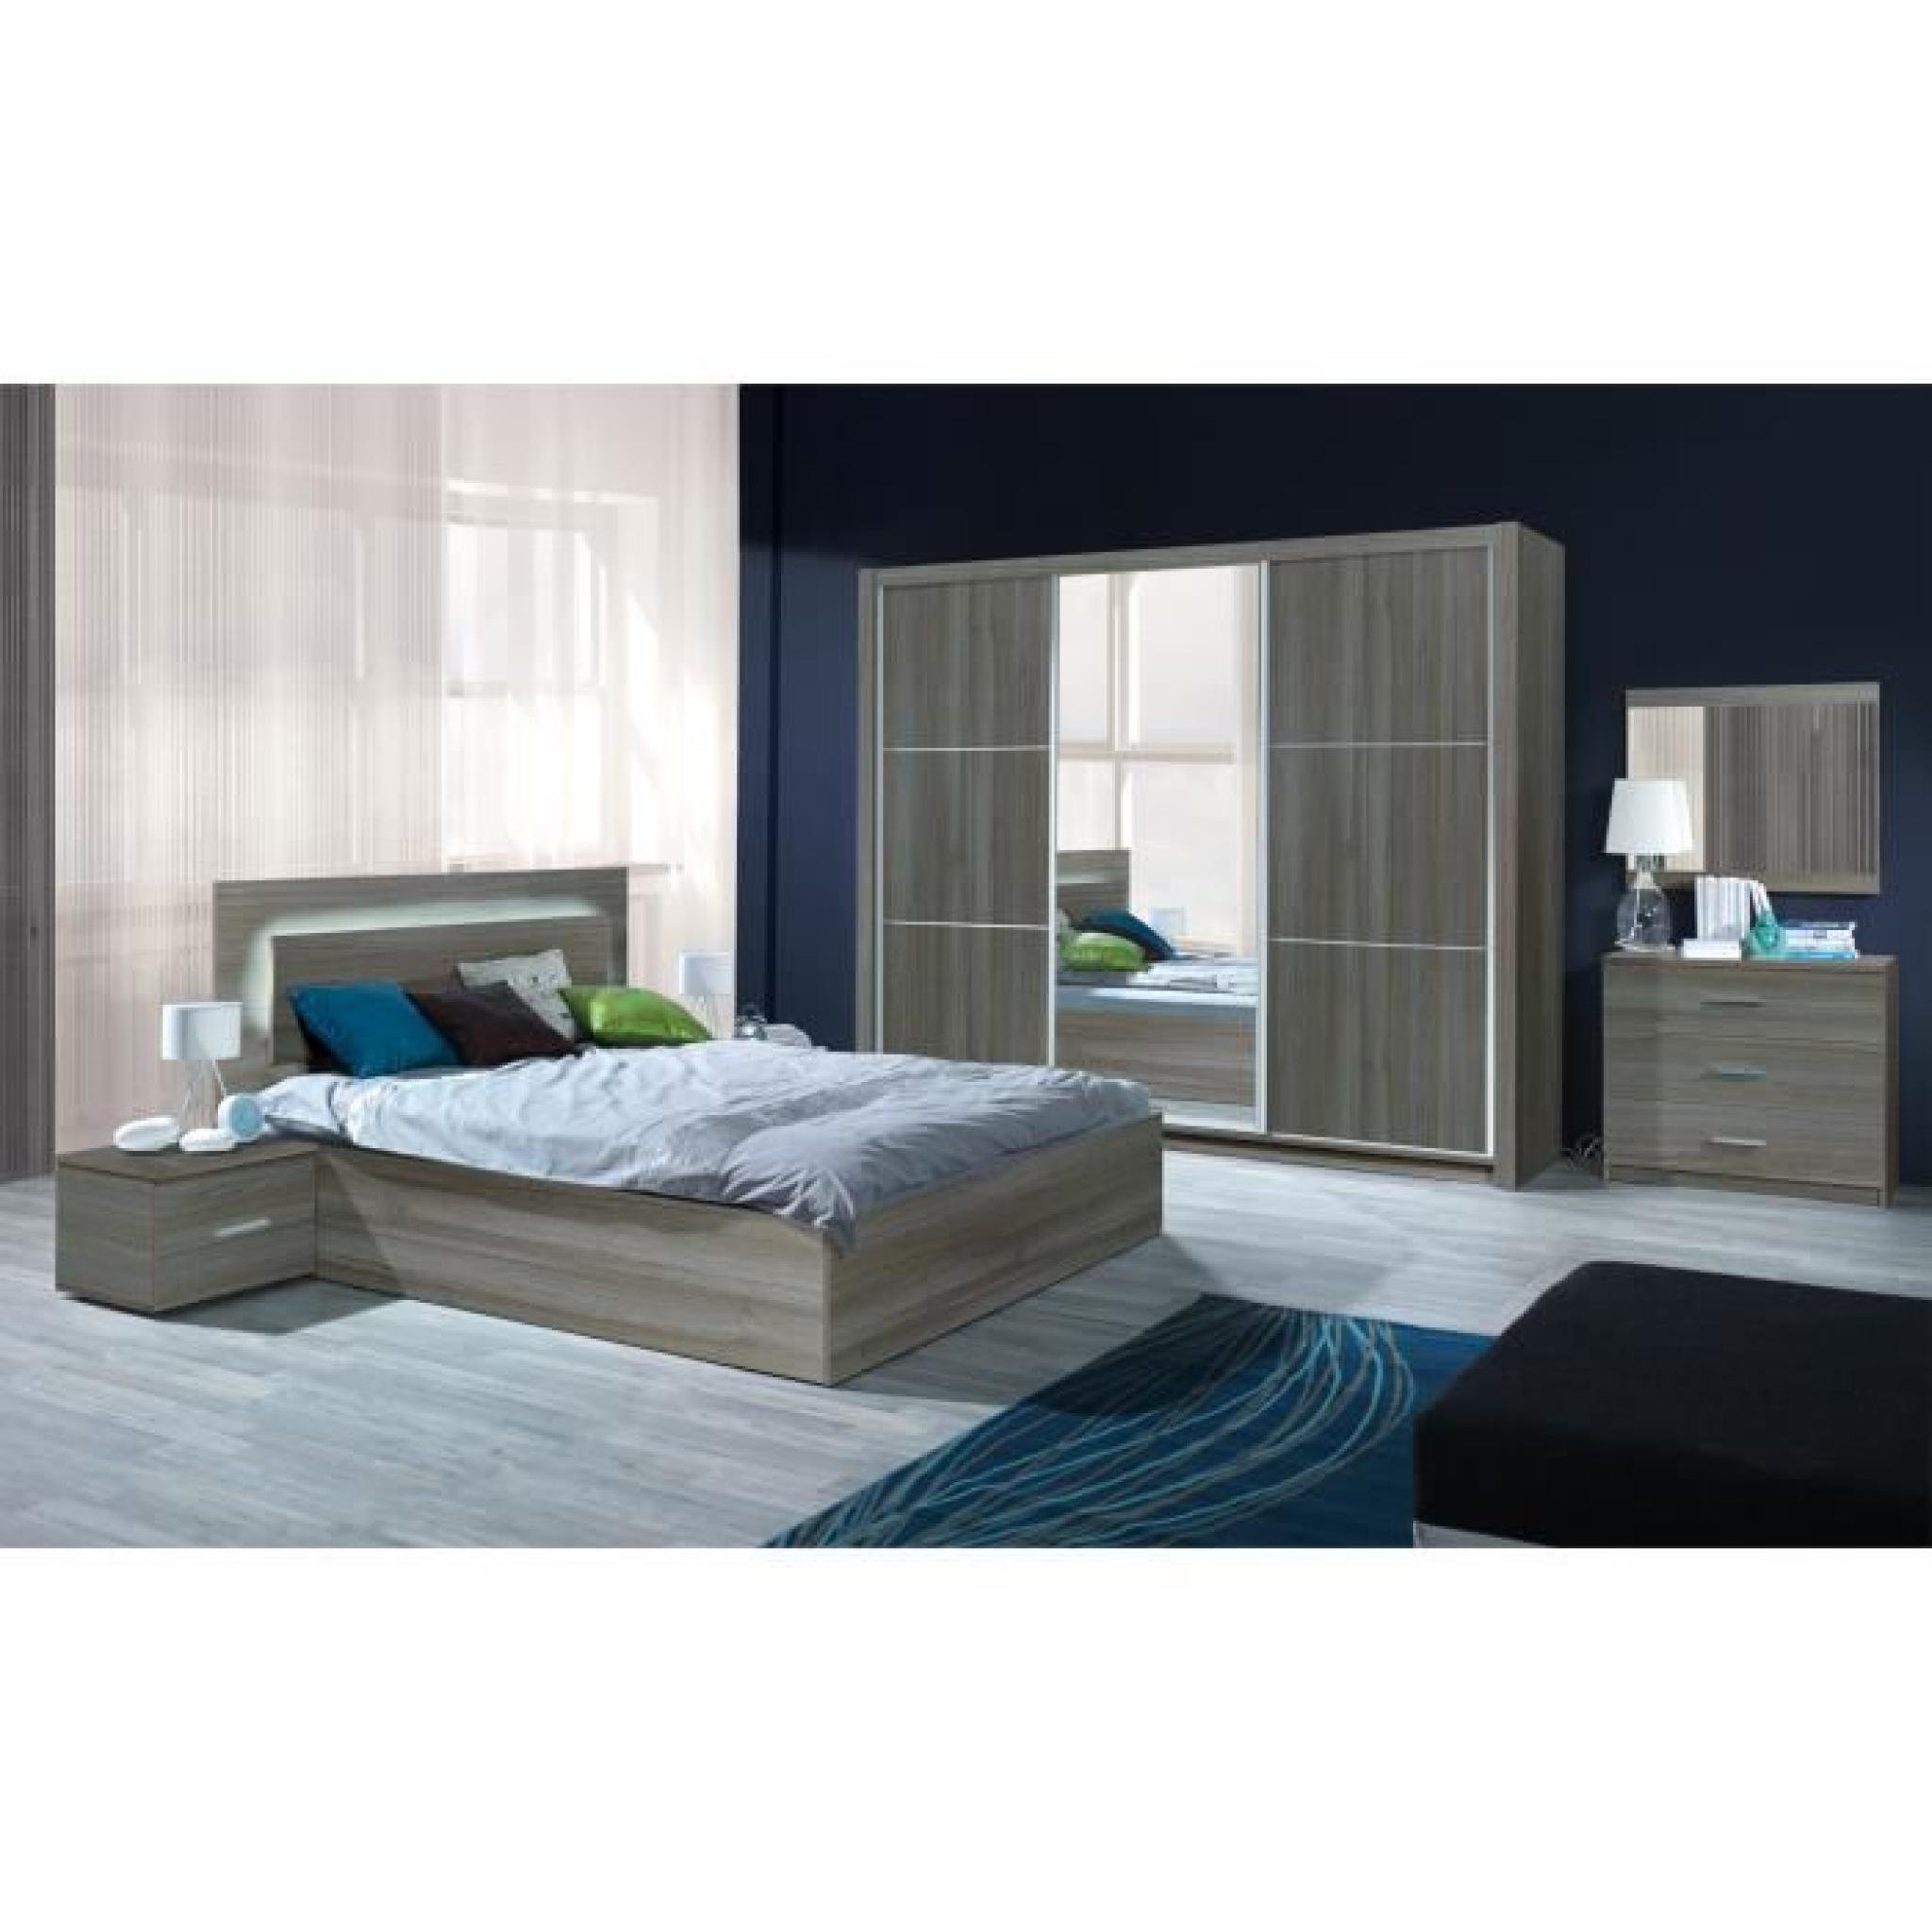 chambre adulte marron turquoise. Black Bedroom Furniture Sets. Home Design Ideas